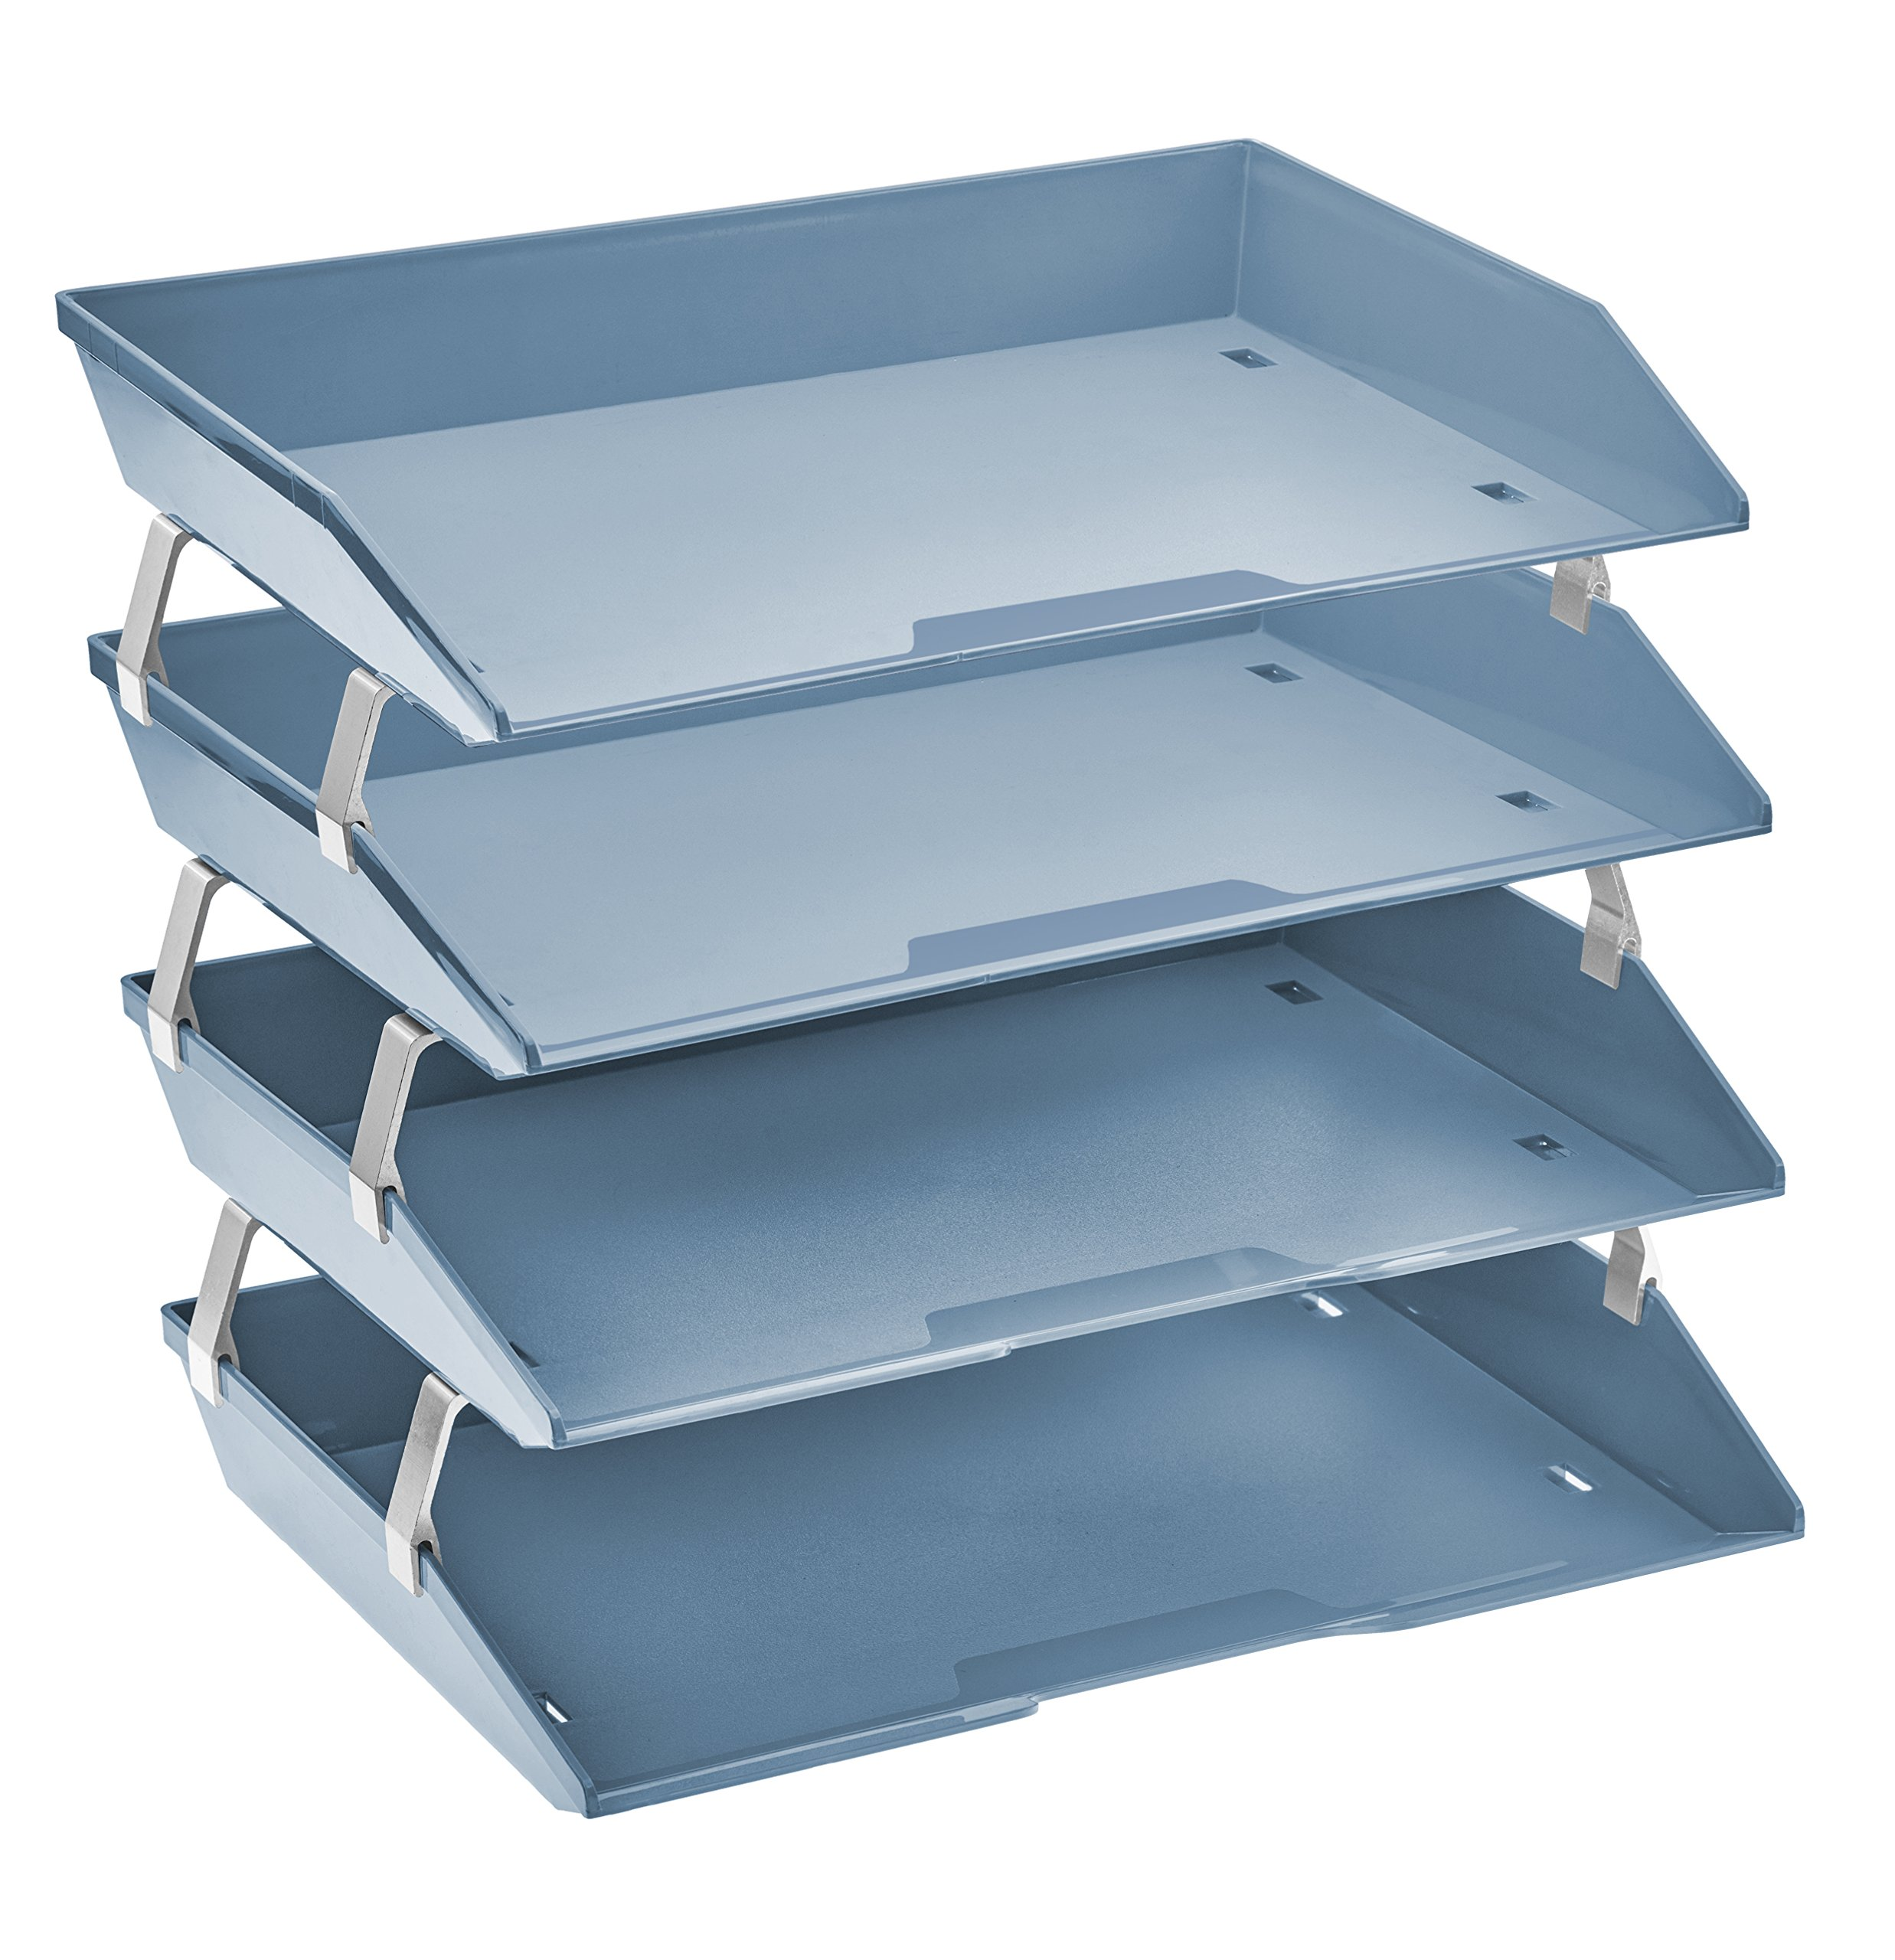 Acrimet Facility Letter Tray 4 Tiers (Solid Blue Color)